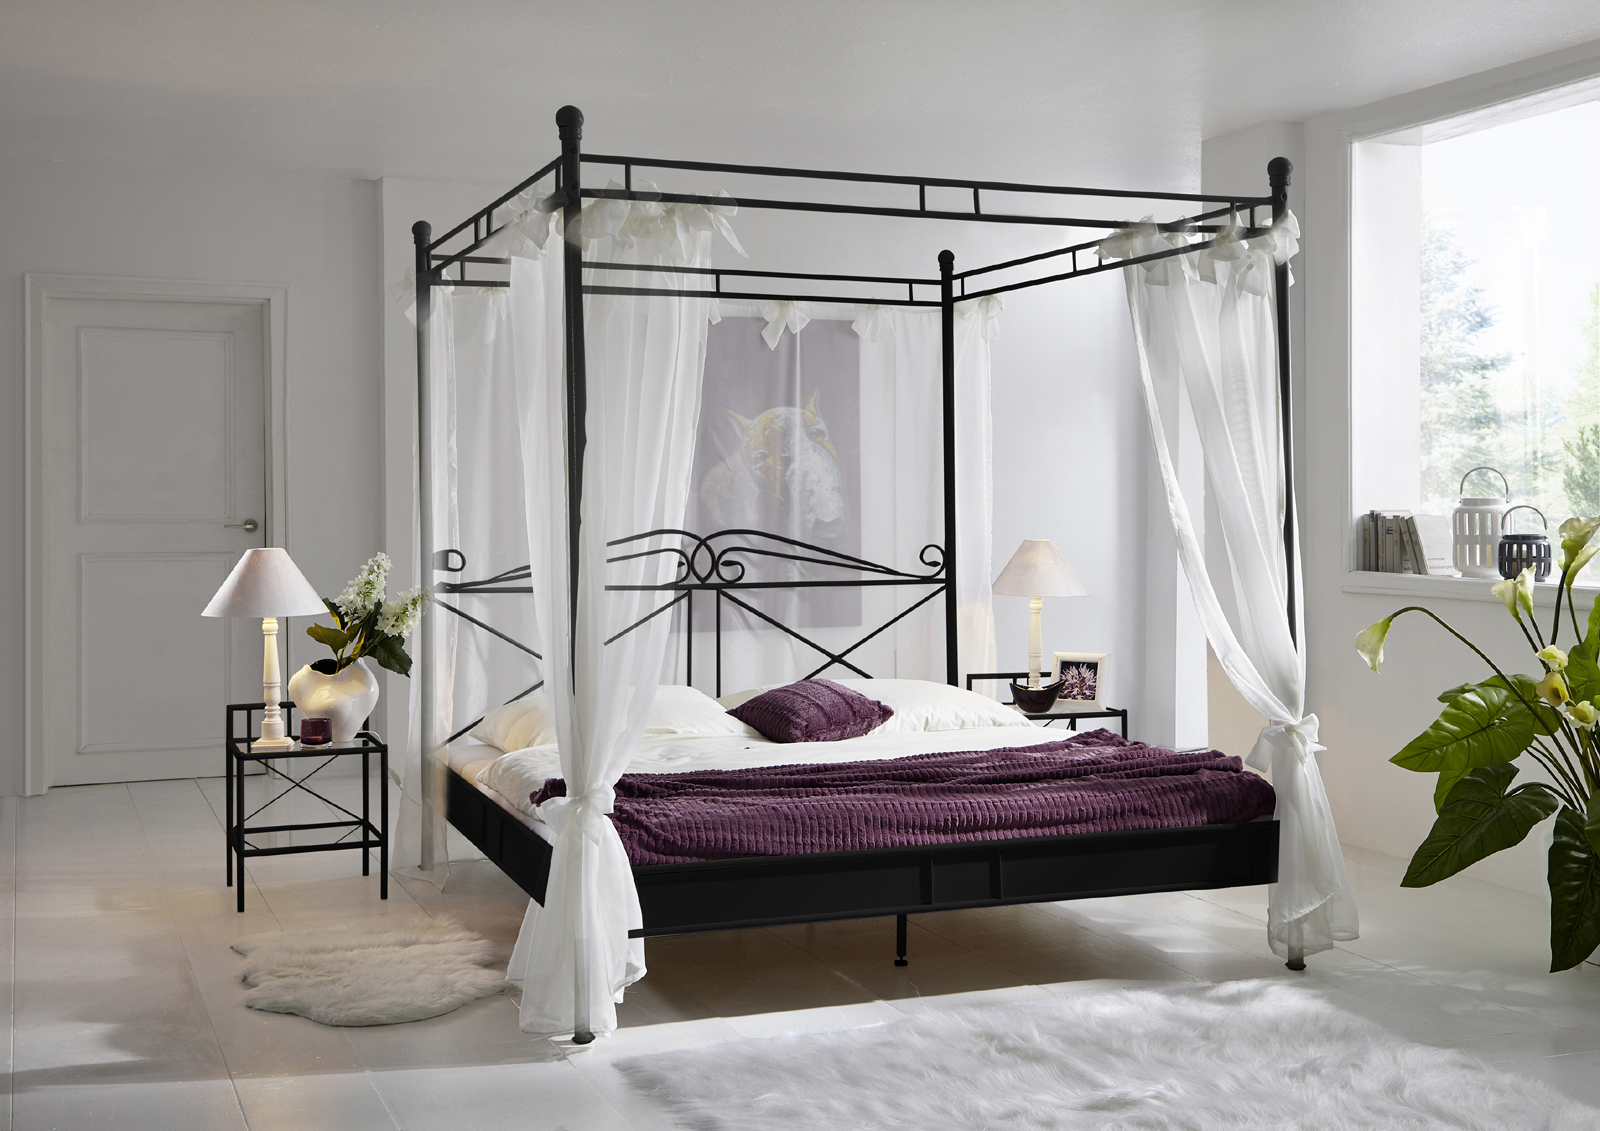 sam design himmelbett 140 cm schwarz venezia auf lager. Black Bedroom Furniture Sets. Home Design Ideas